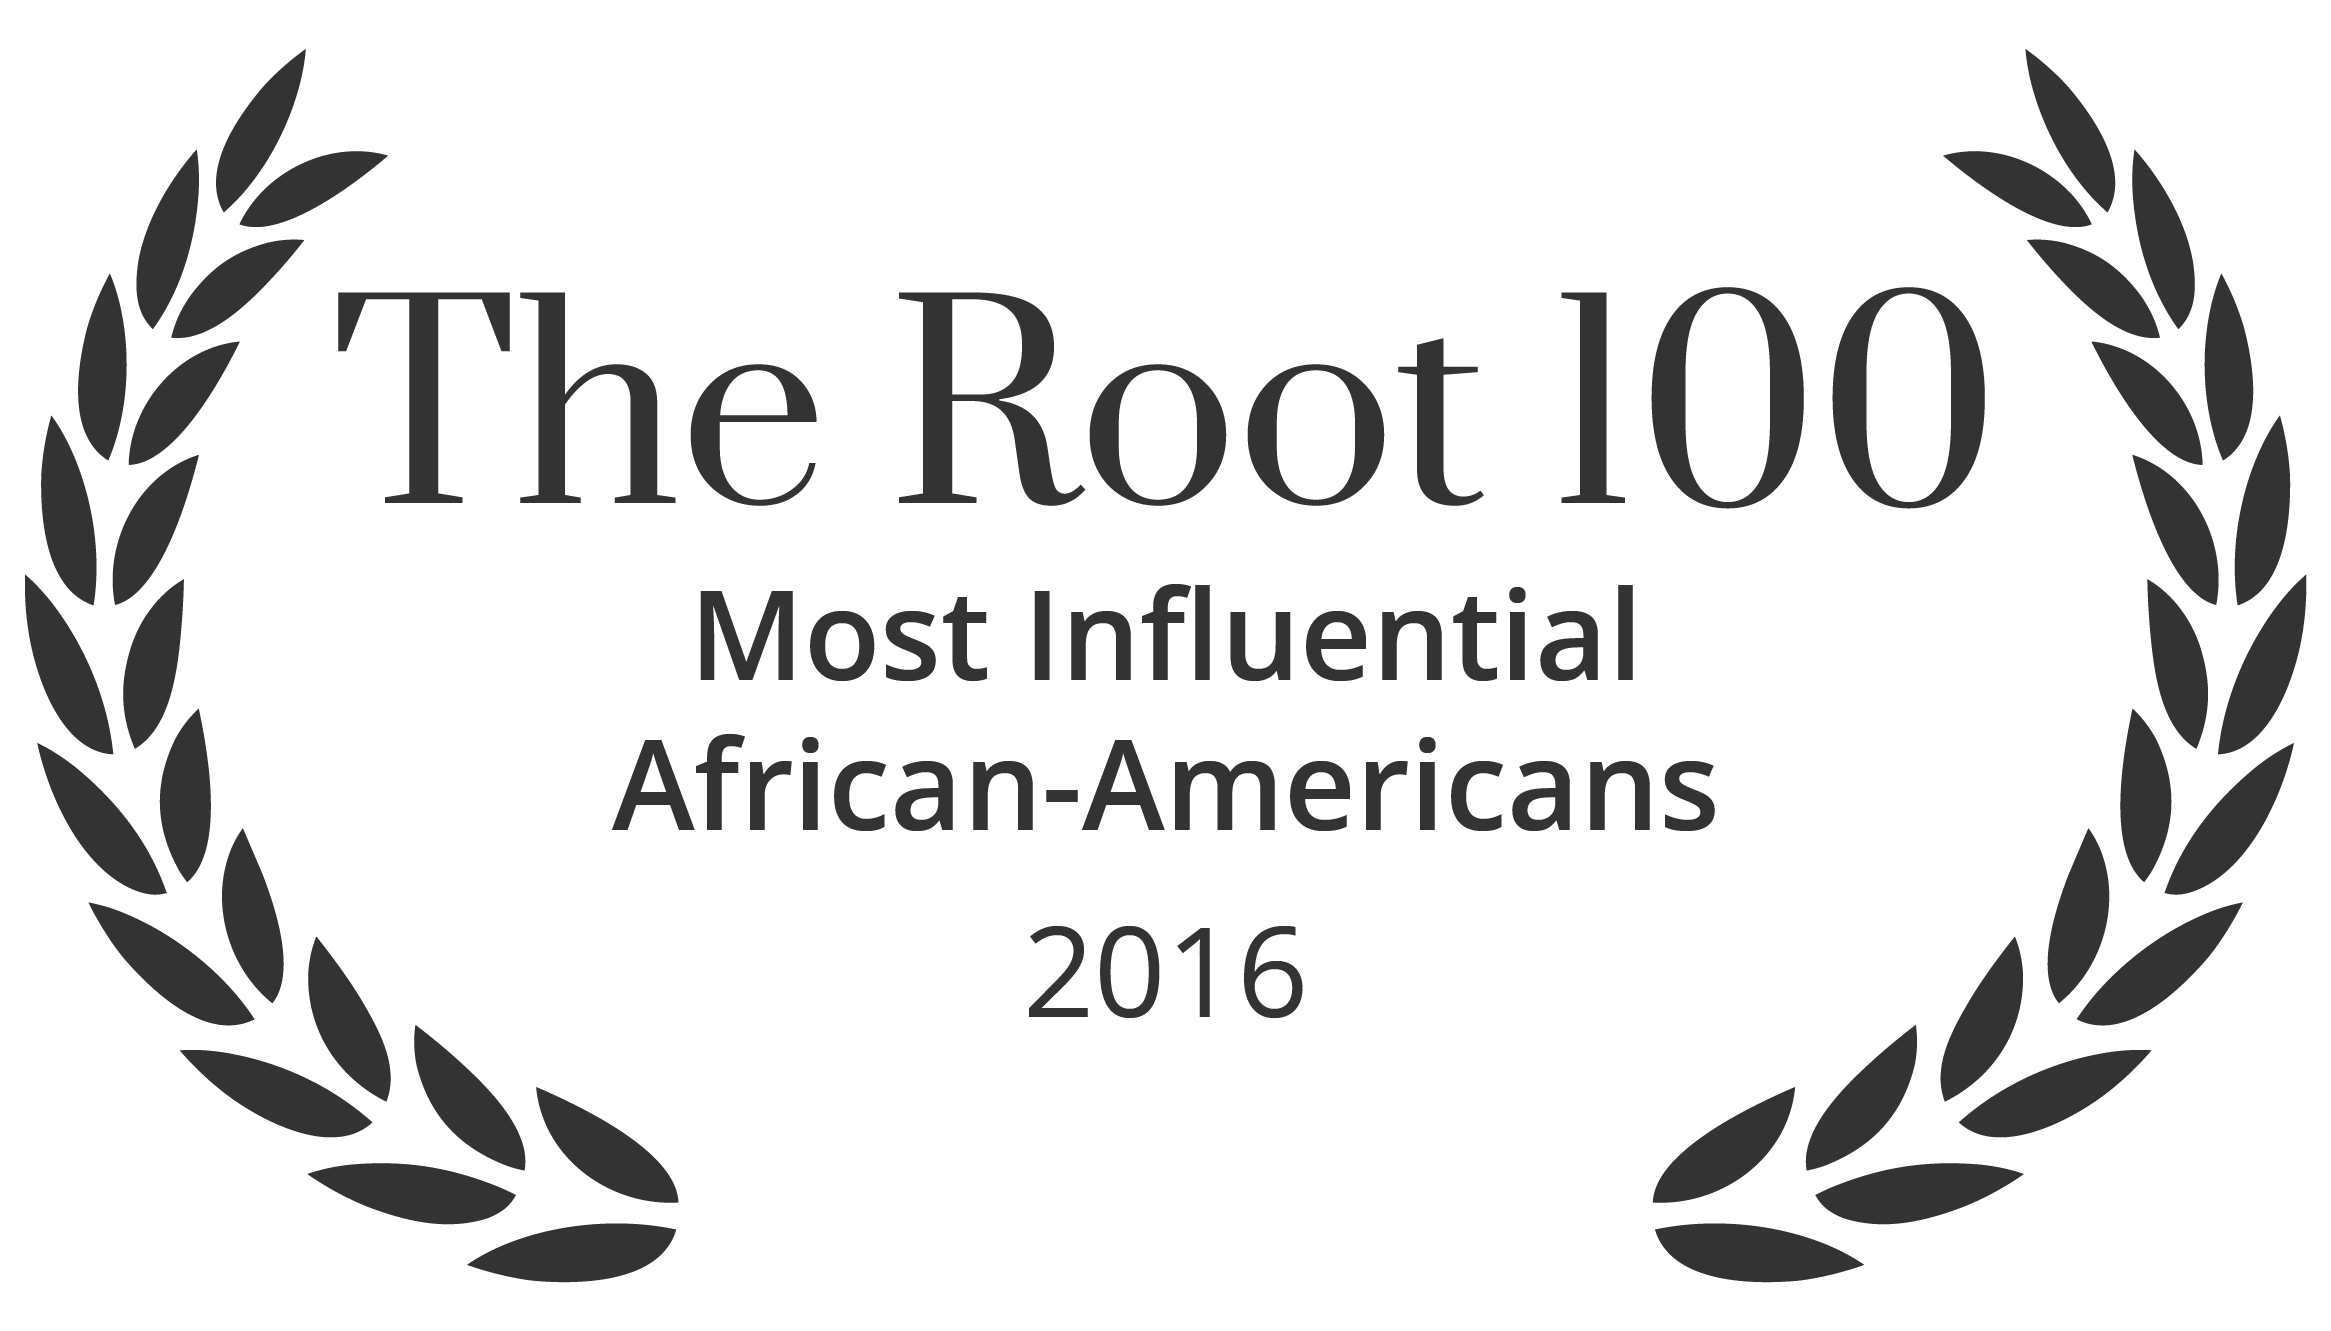 The Root 100